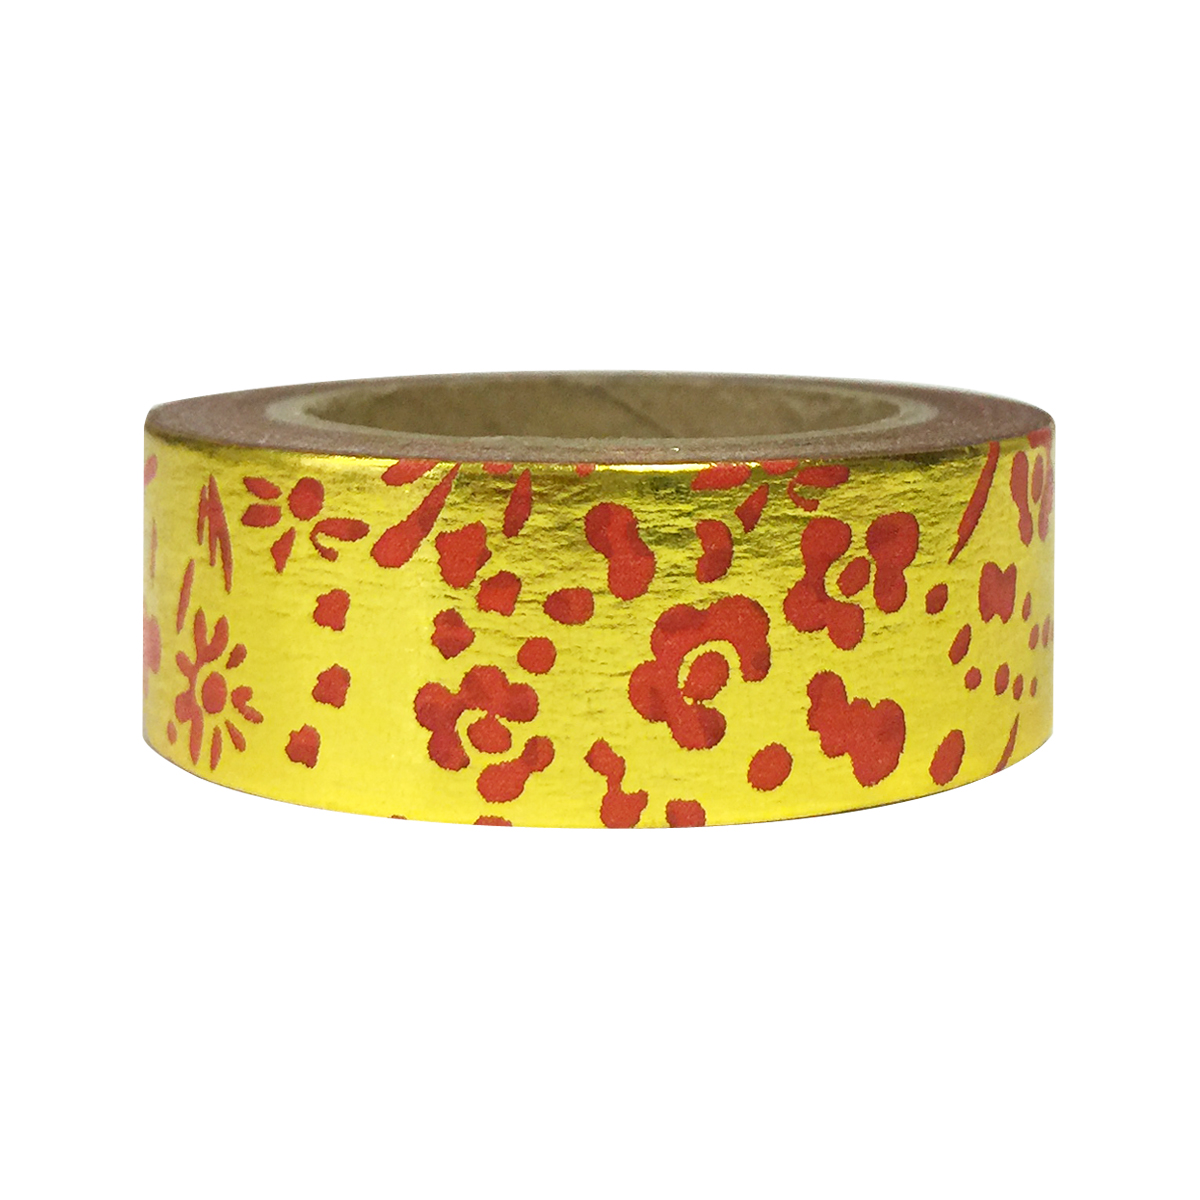 Wrapables® Colorful Washi Masking Tape, Metallic Gold and Red Floral